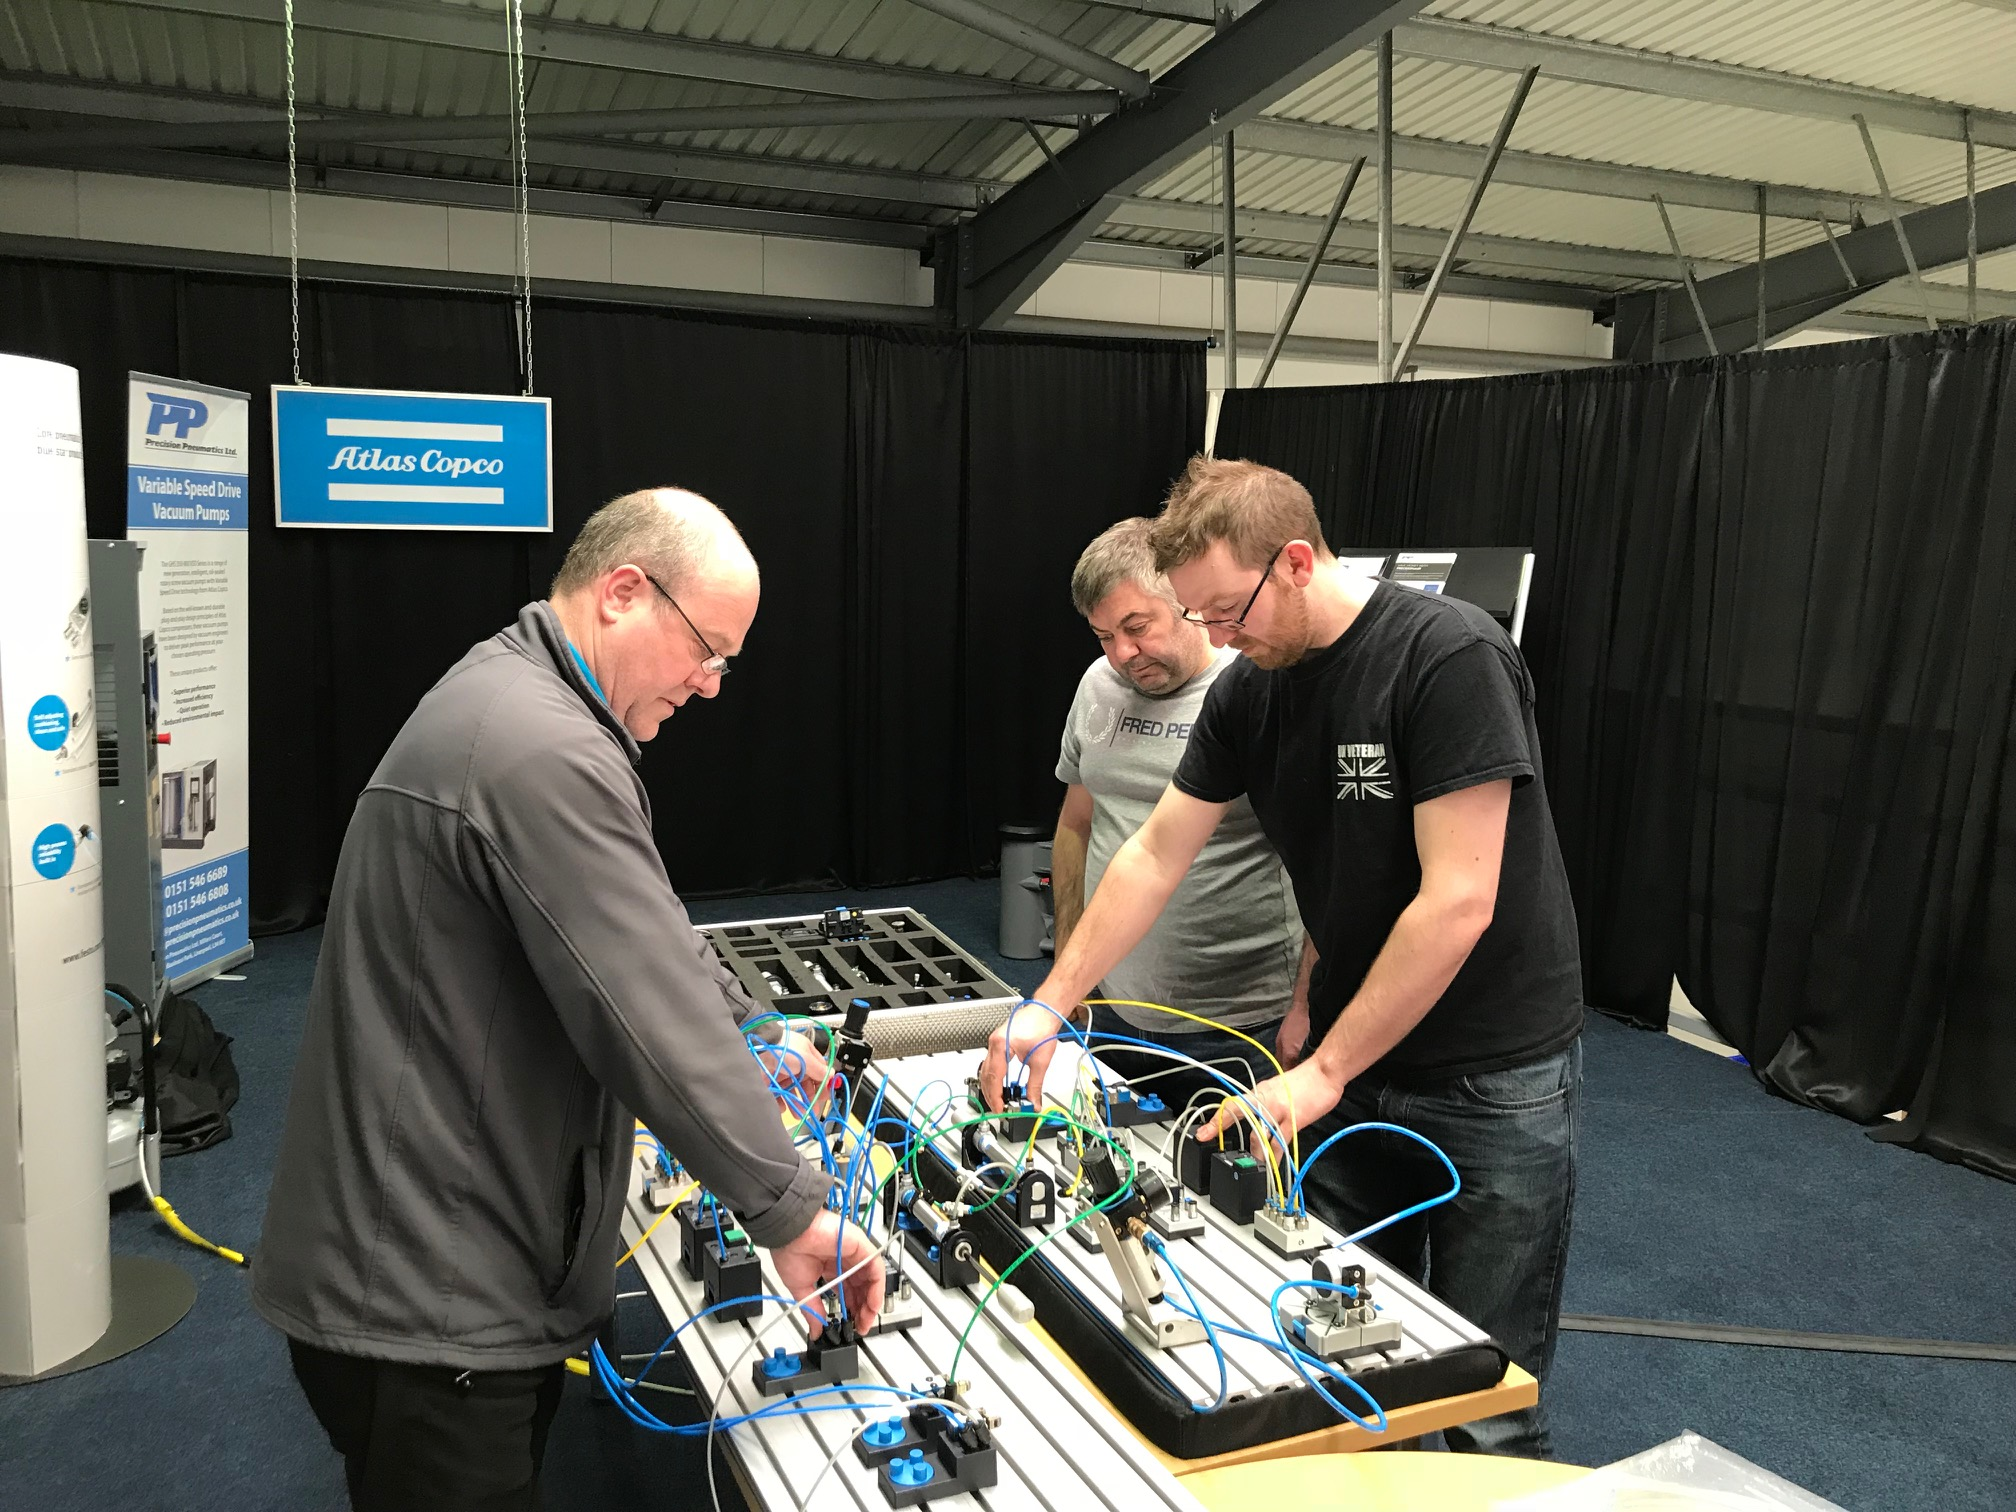 Practical activities on the Fundamentals in Pneumatics course